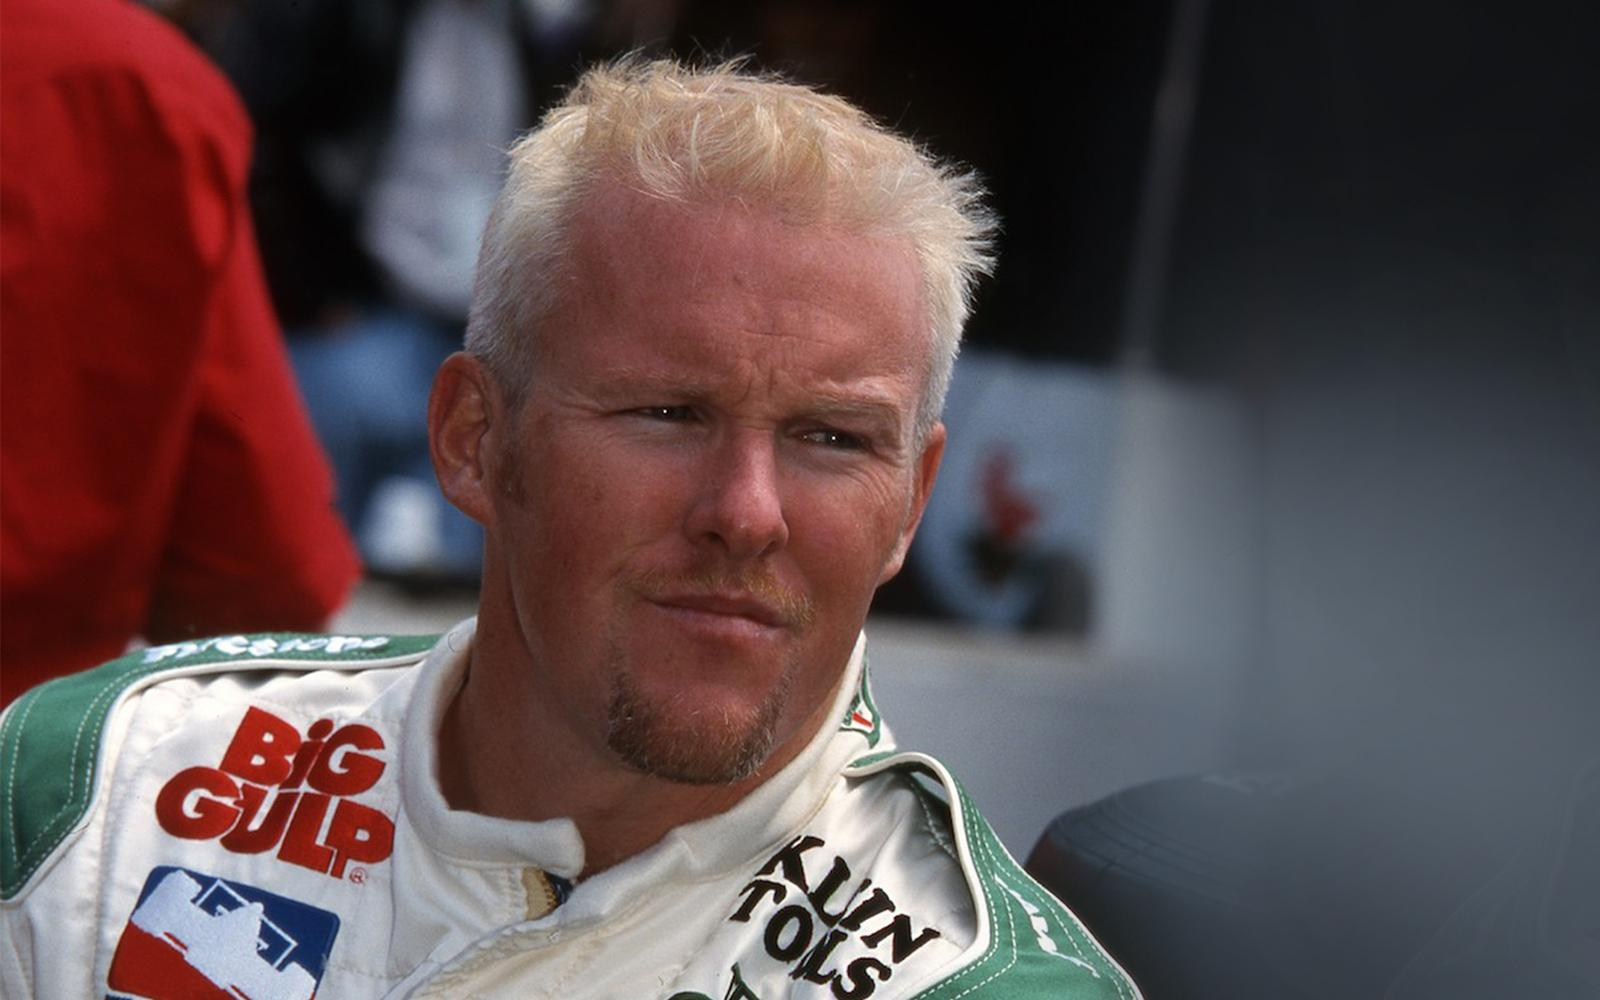 Paul Tracy to join Trans Am's TA2 class at Road Atlanta